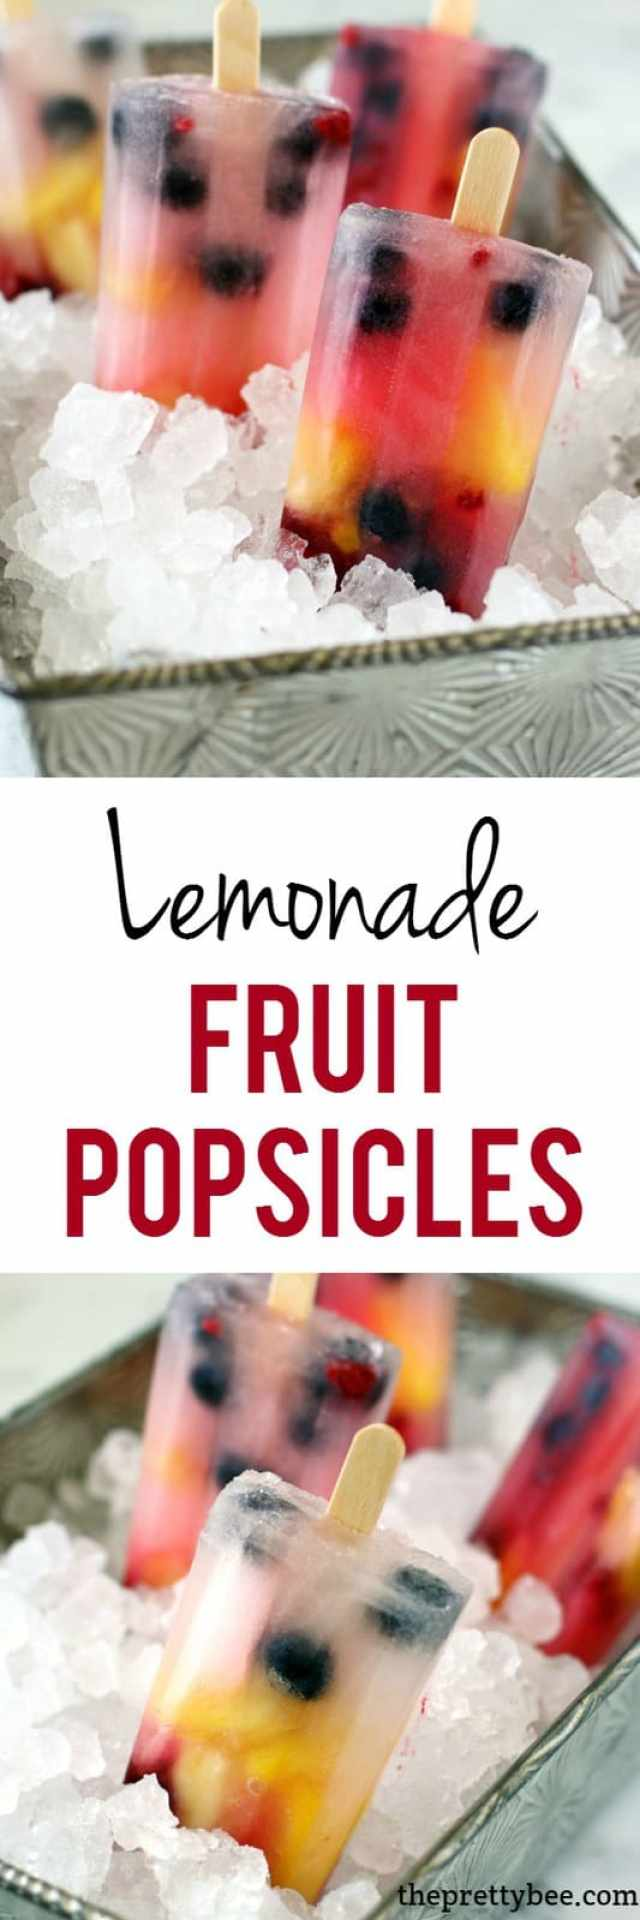 Lemonade fruit popsicles are a perfectly refreshing summer treat!